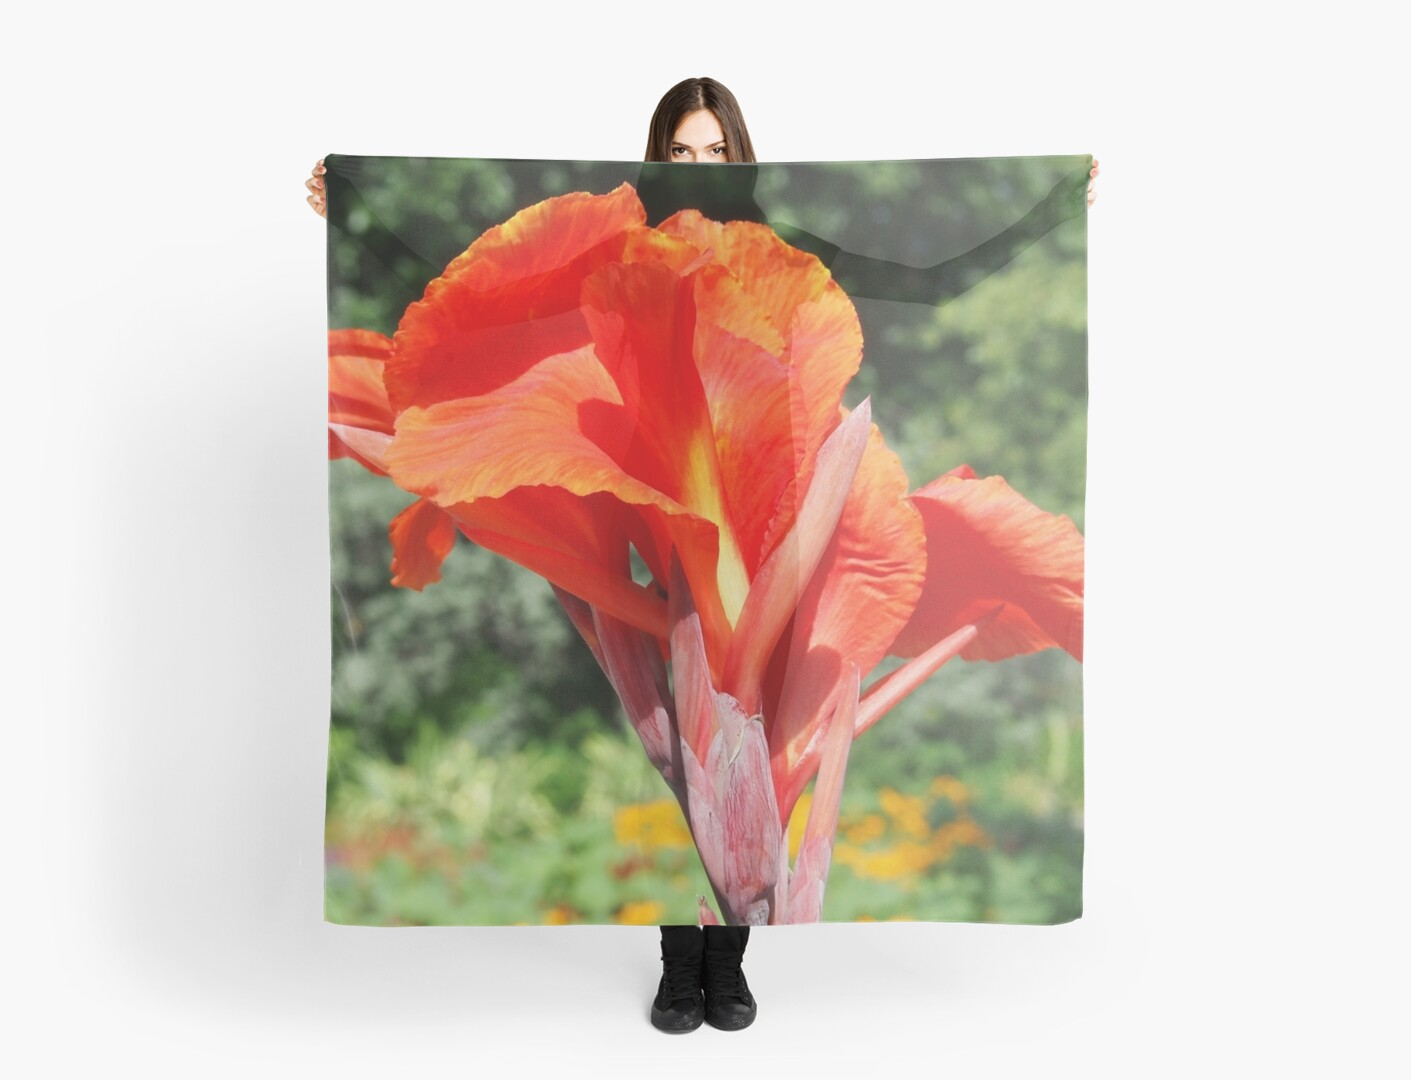 Red Canna Lilly Flower in Summer Garden by Amy McDaniel